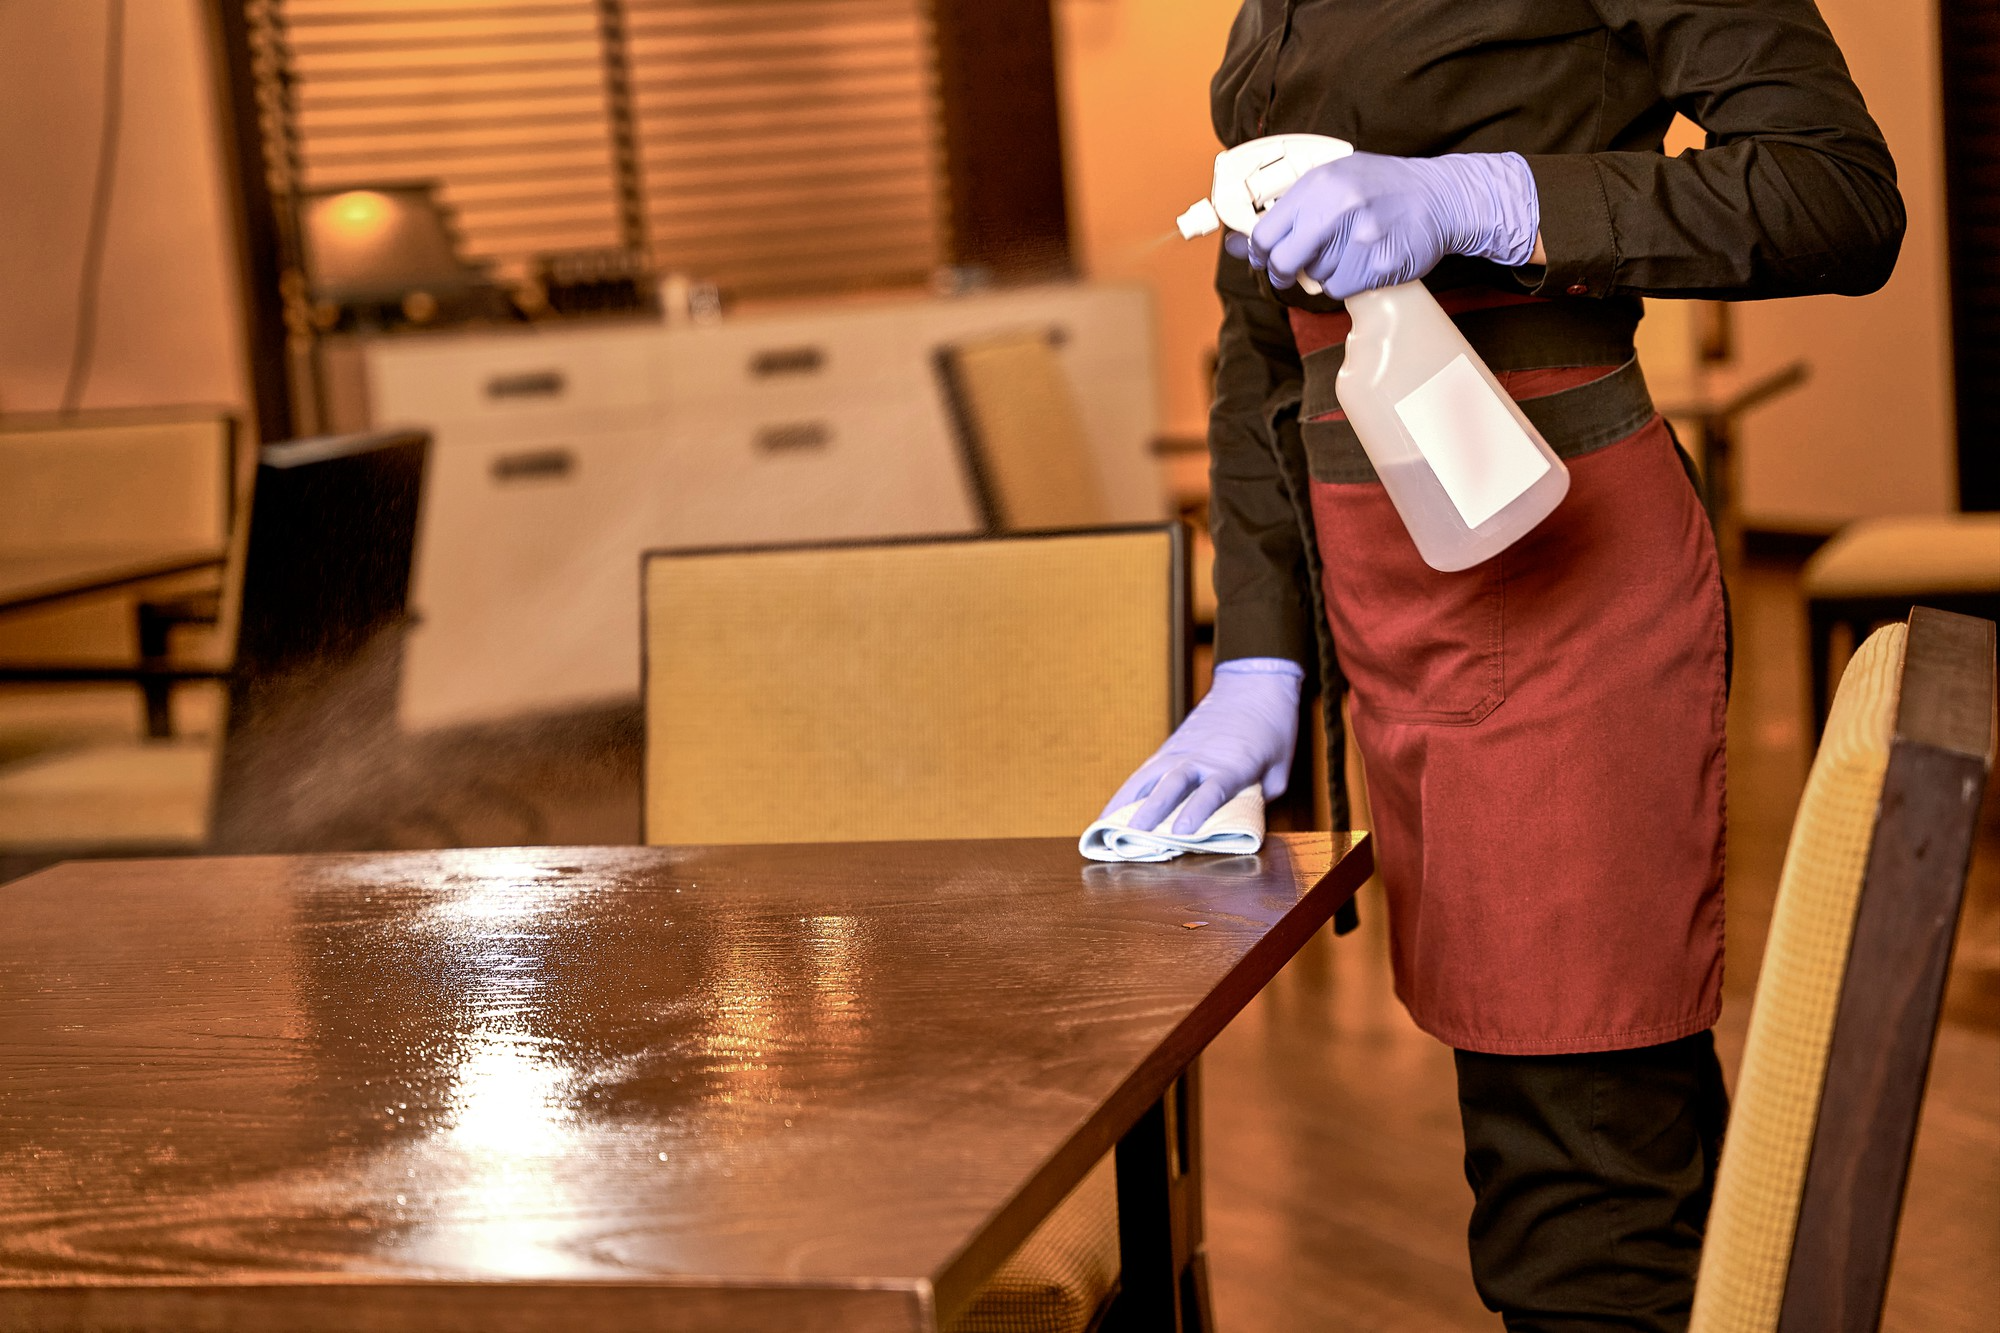 server cleaning table